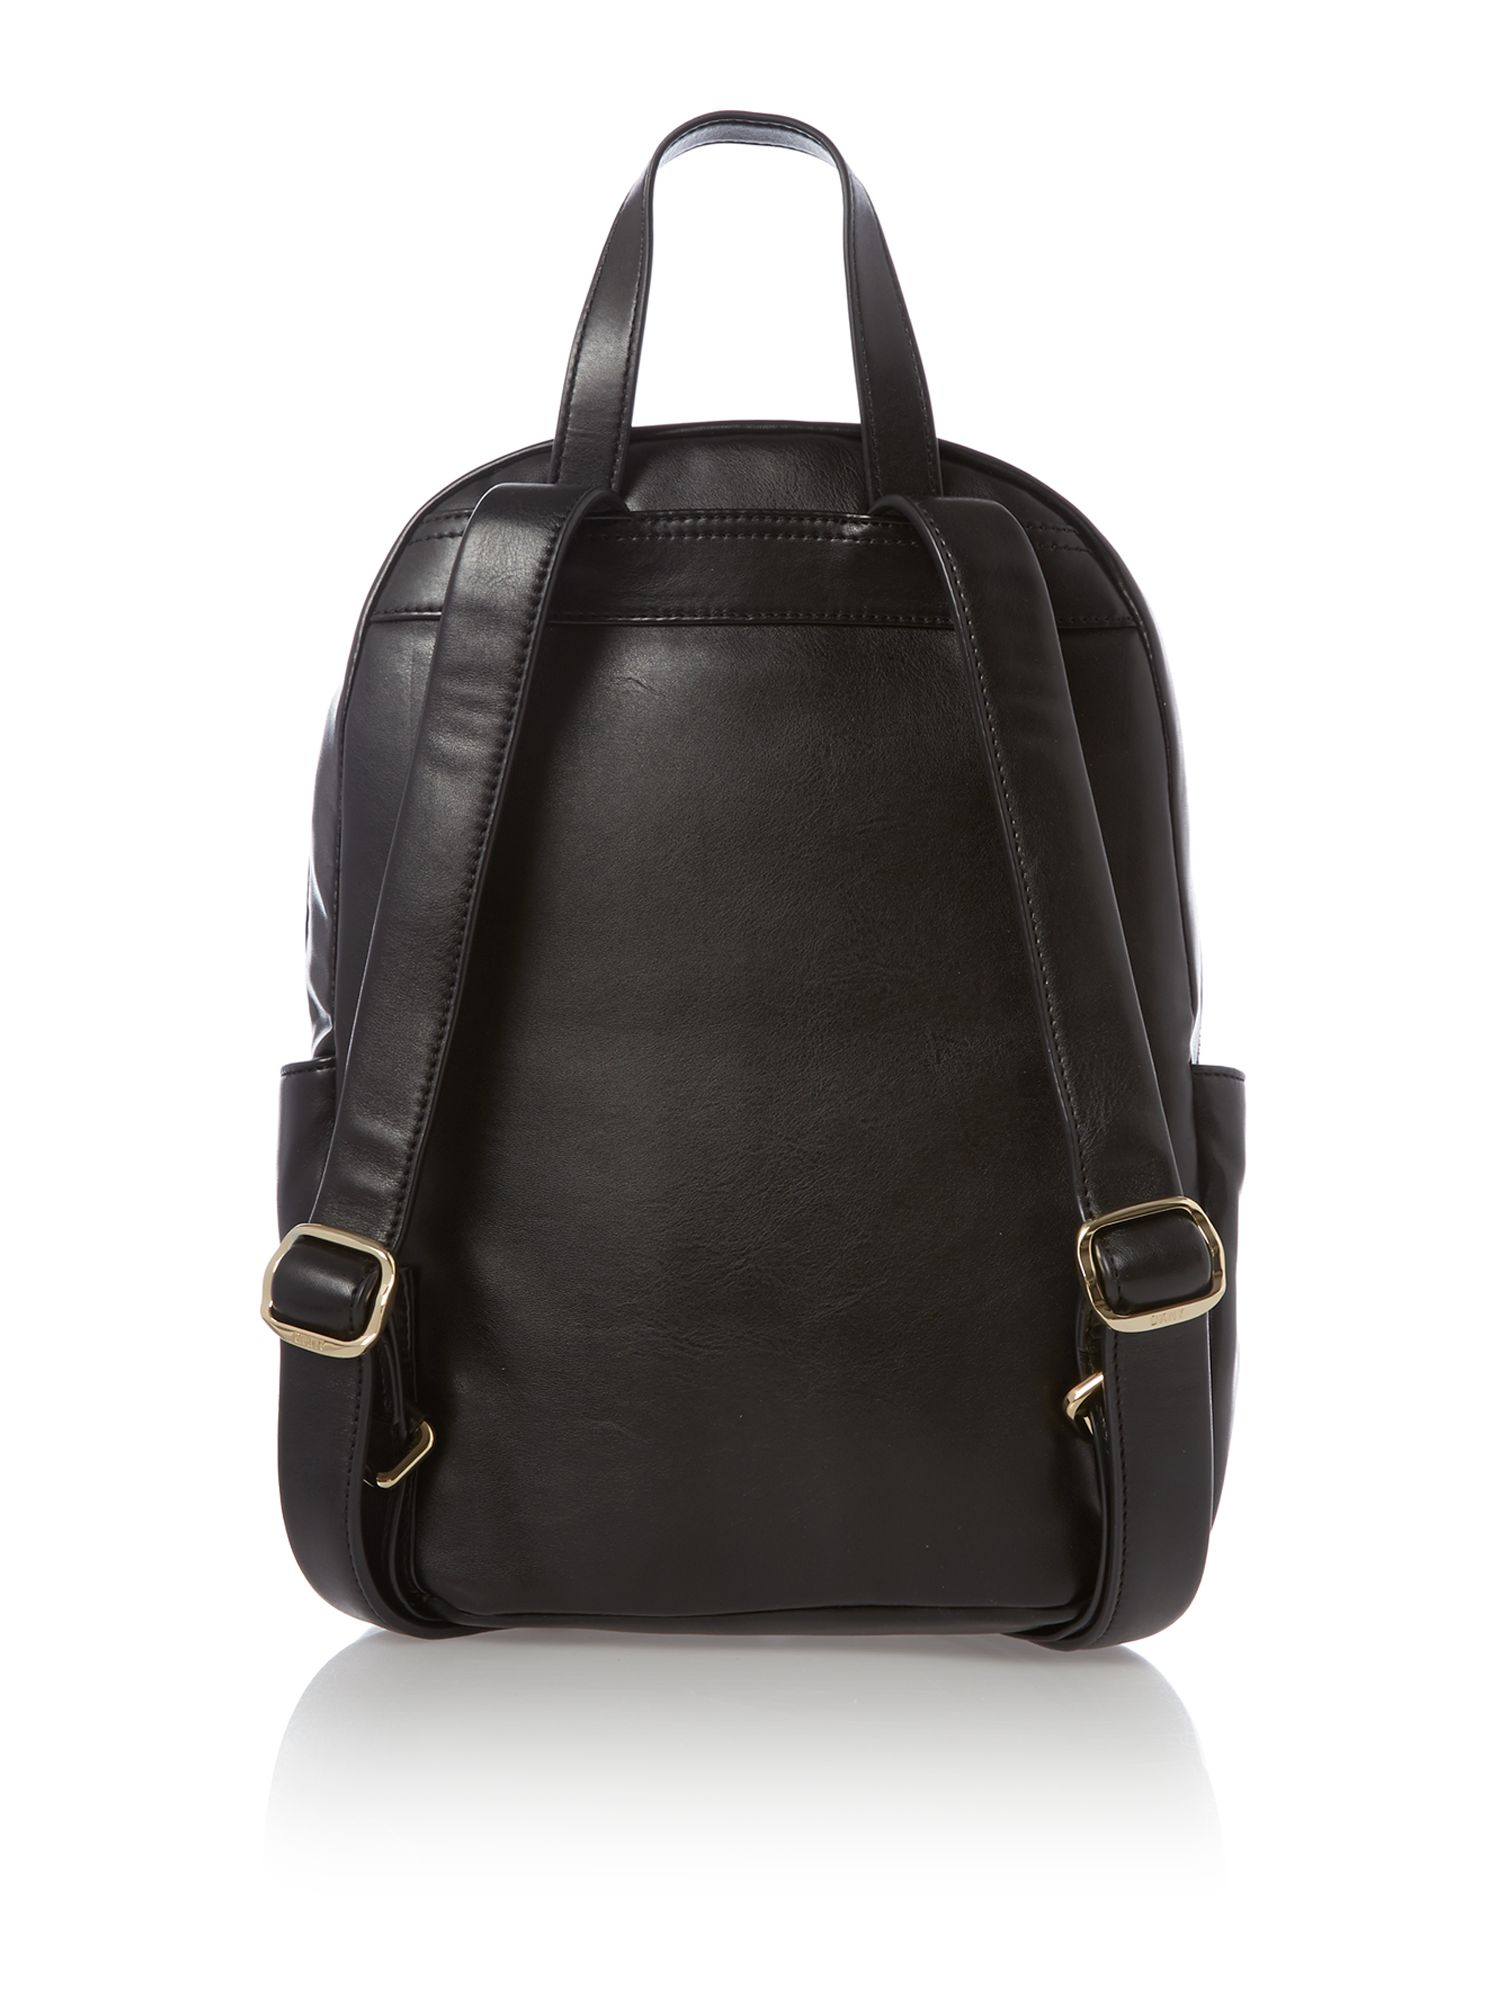 Modern goth black backpack with detail